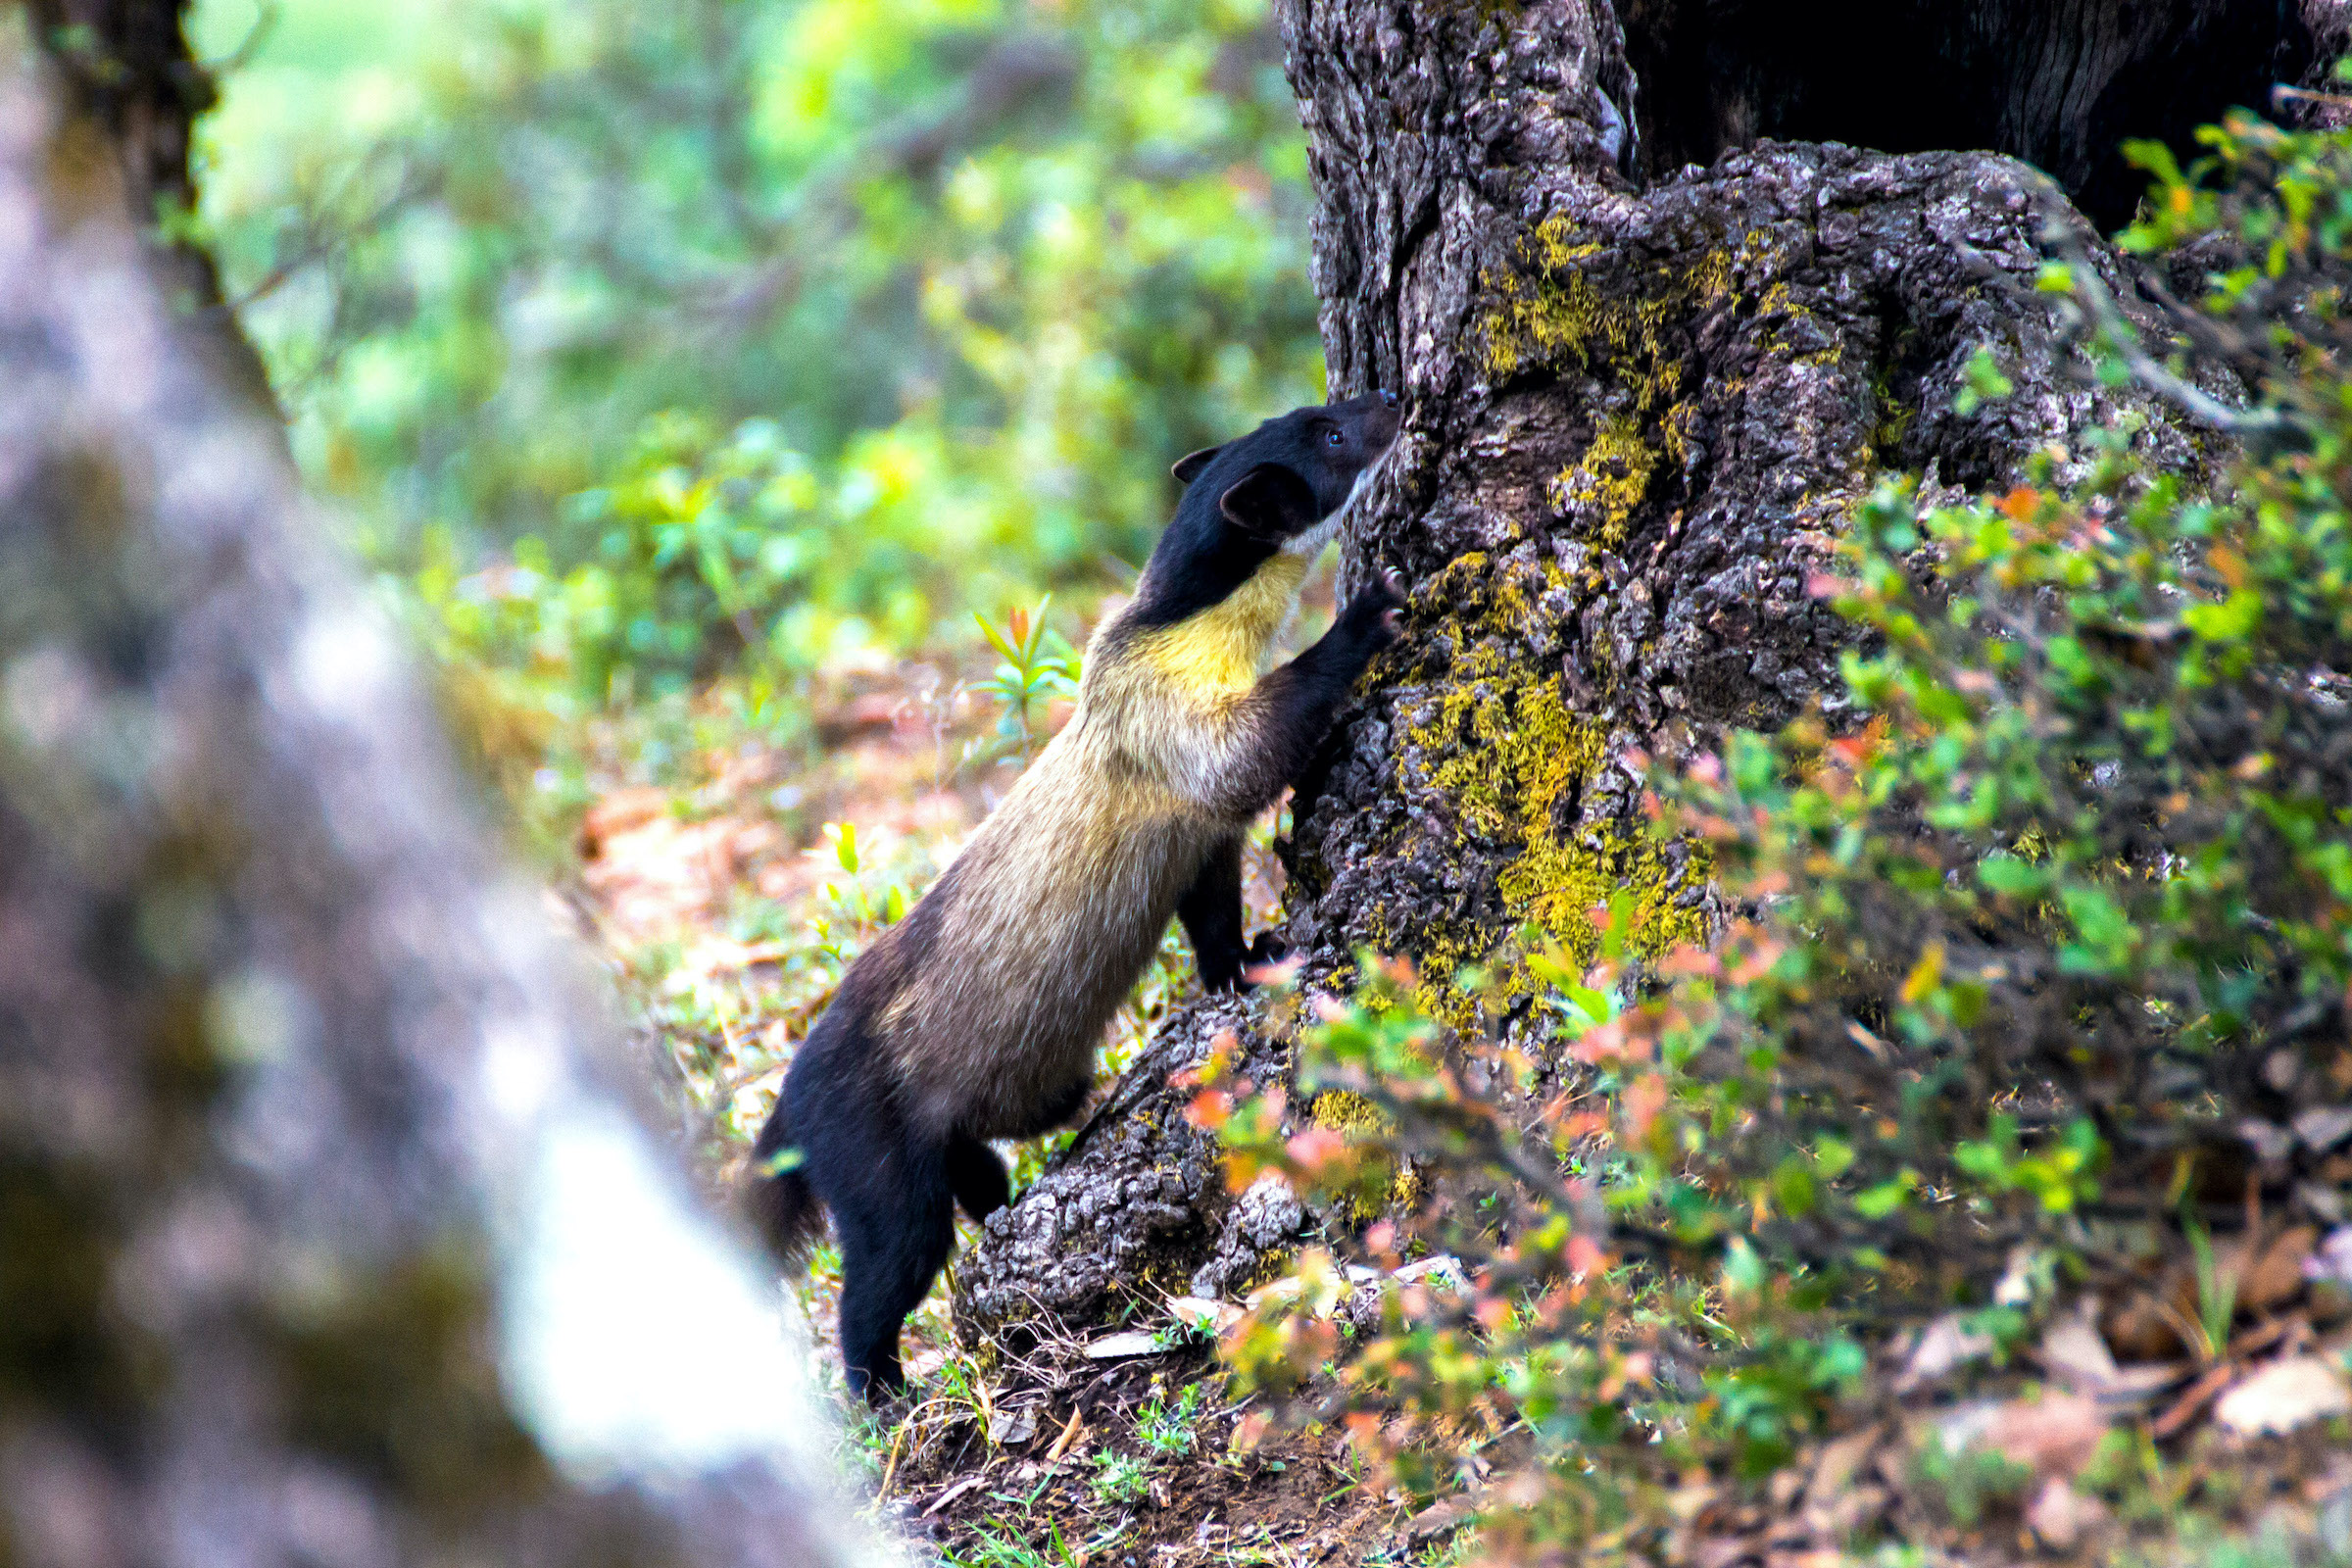 Still oblivious to my presence, the yellow-throated marten forages for his next meal as the birds around him cause an uproar. Photo: Tarun Menon